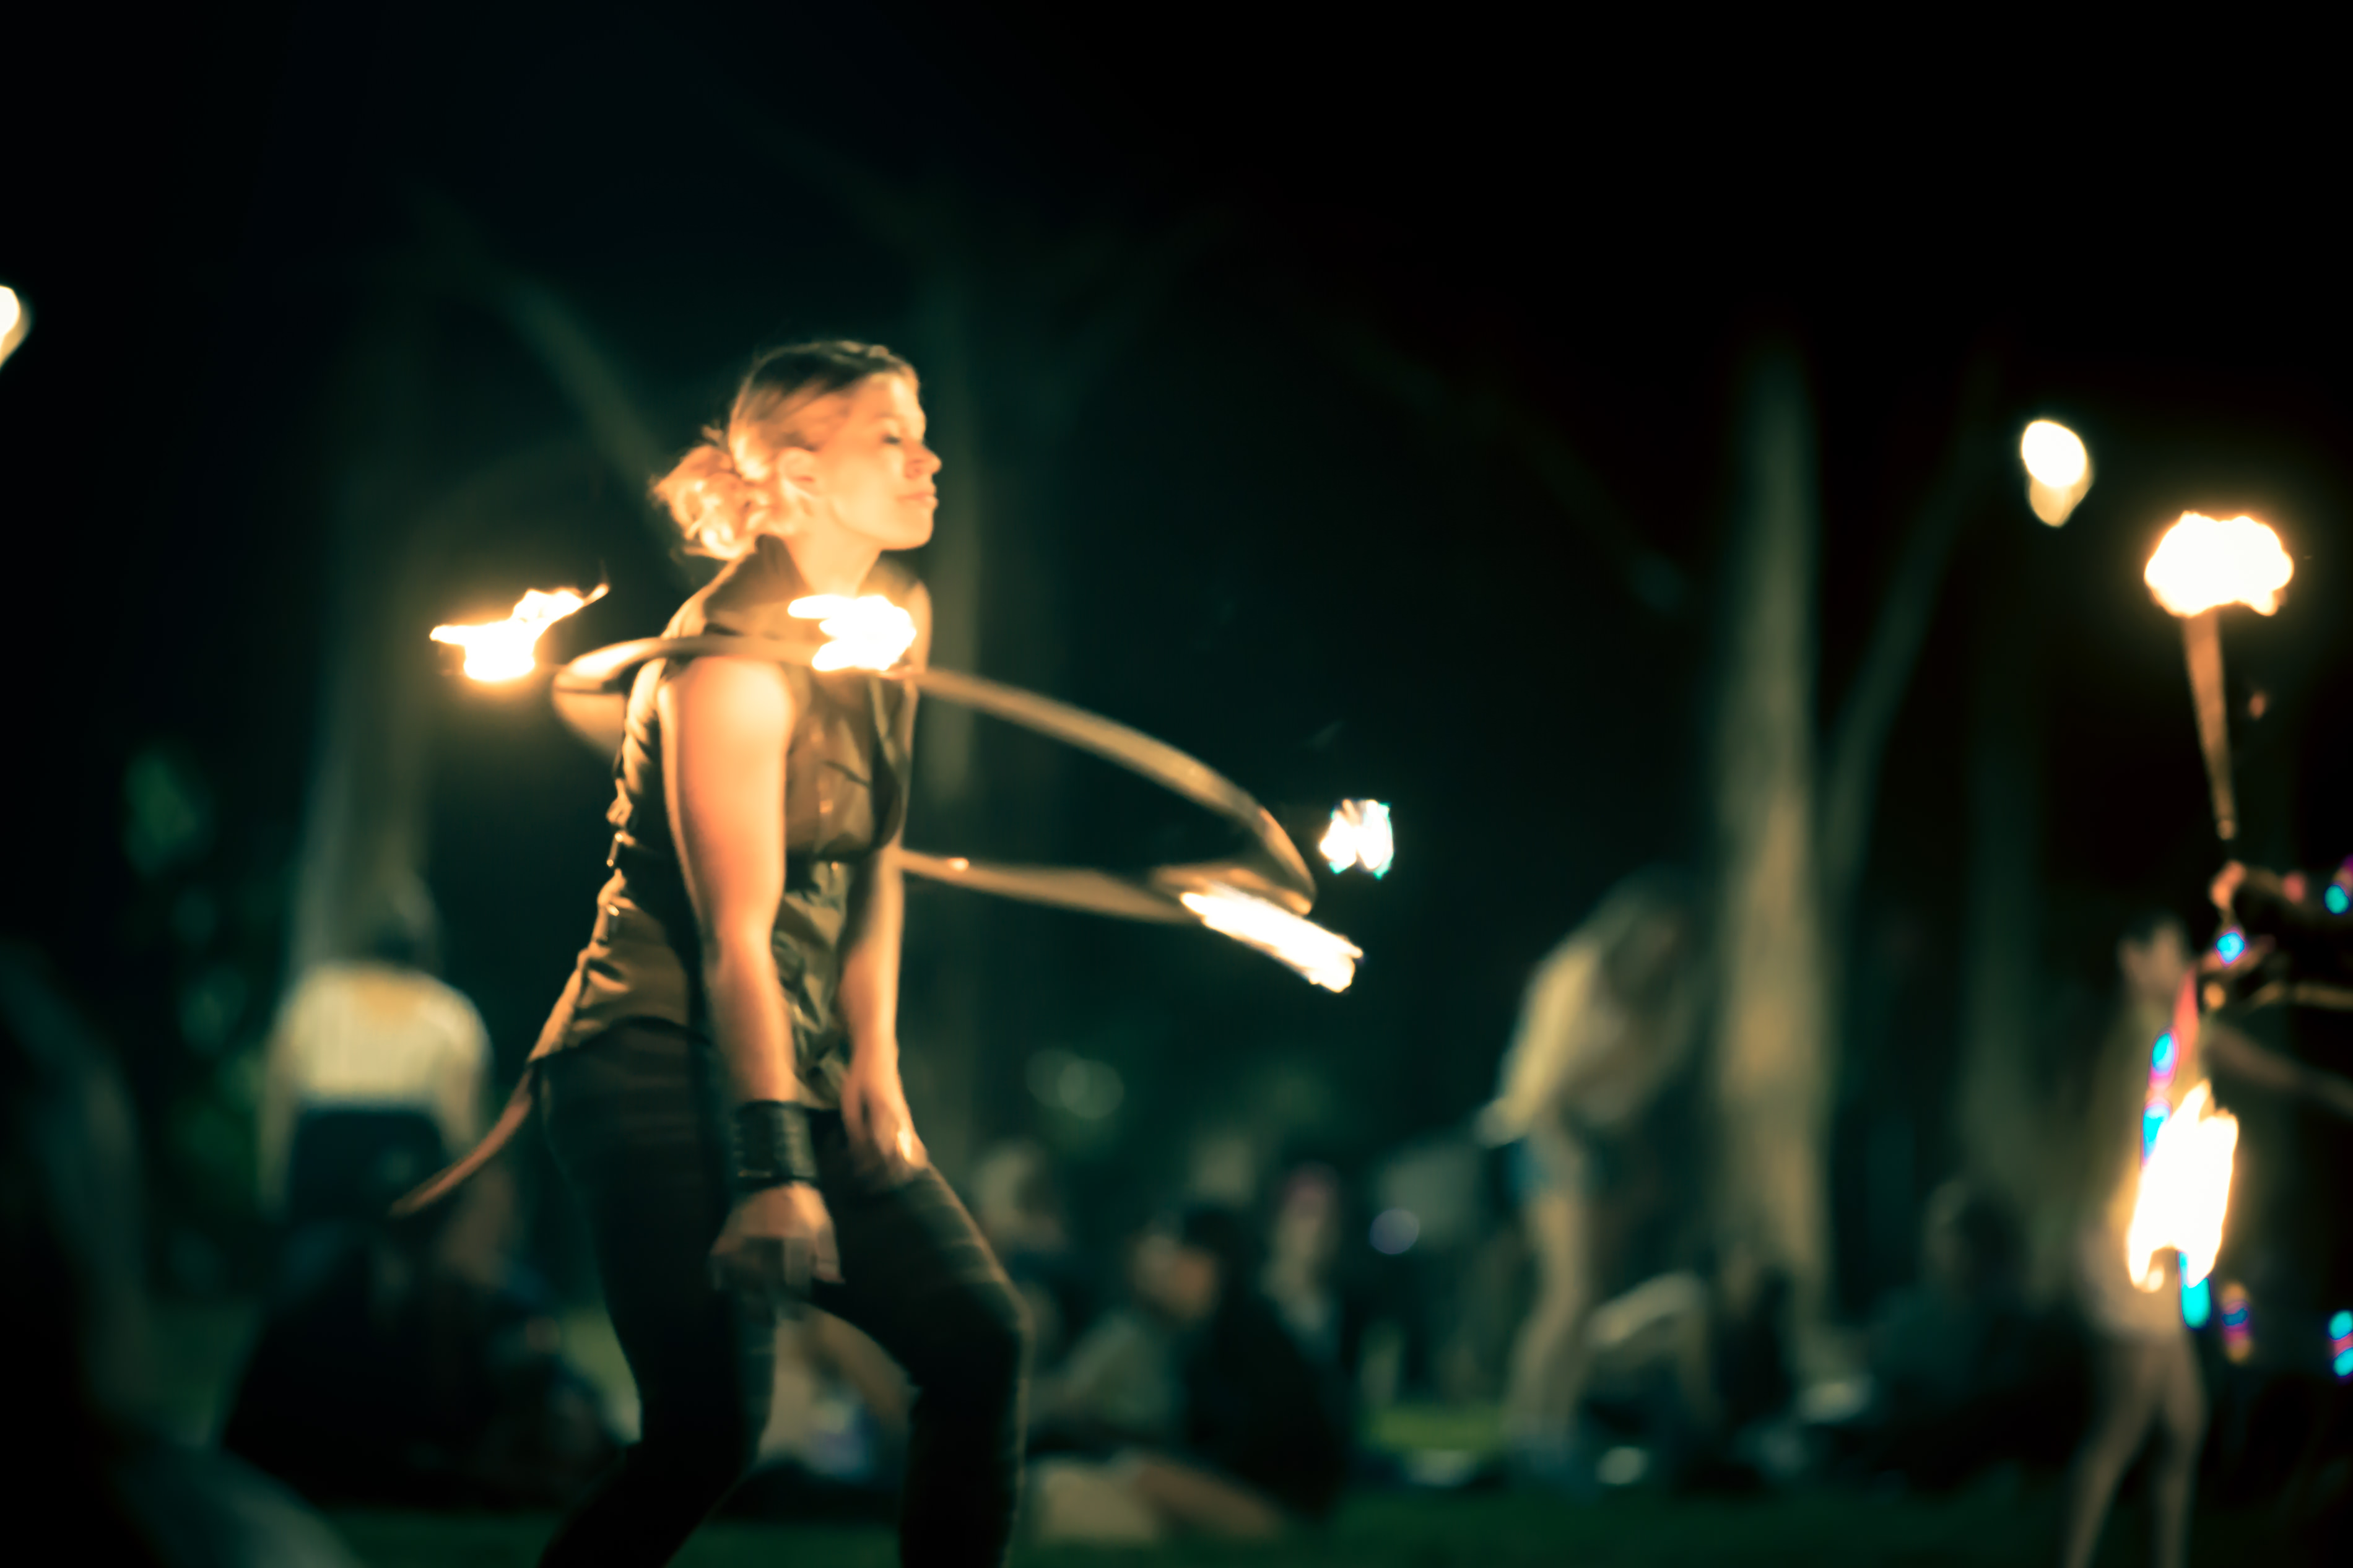 Newtown Fire Twirling with a Flaming Hula Hoop in Camperdown Memorial Park